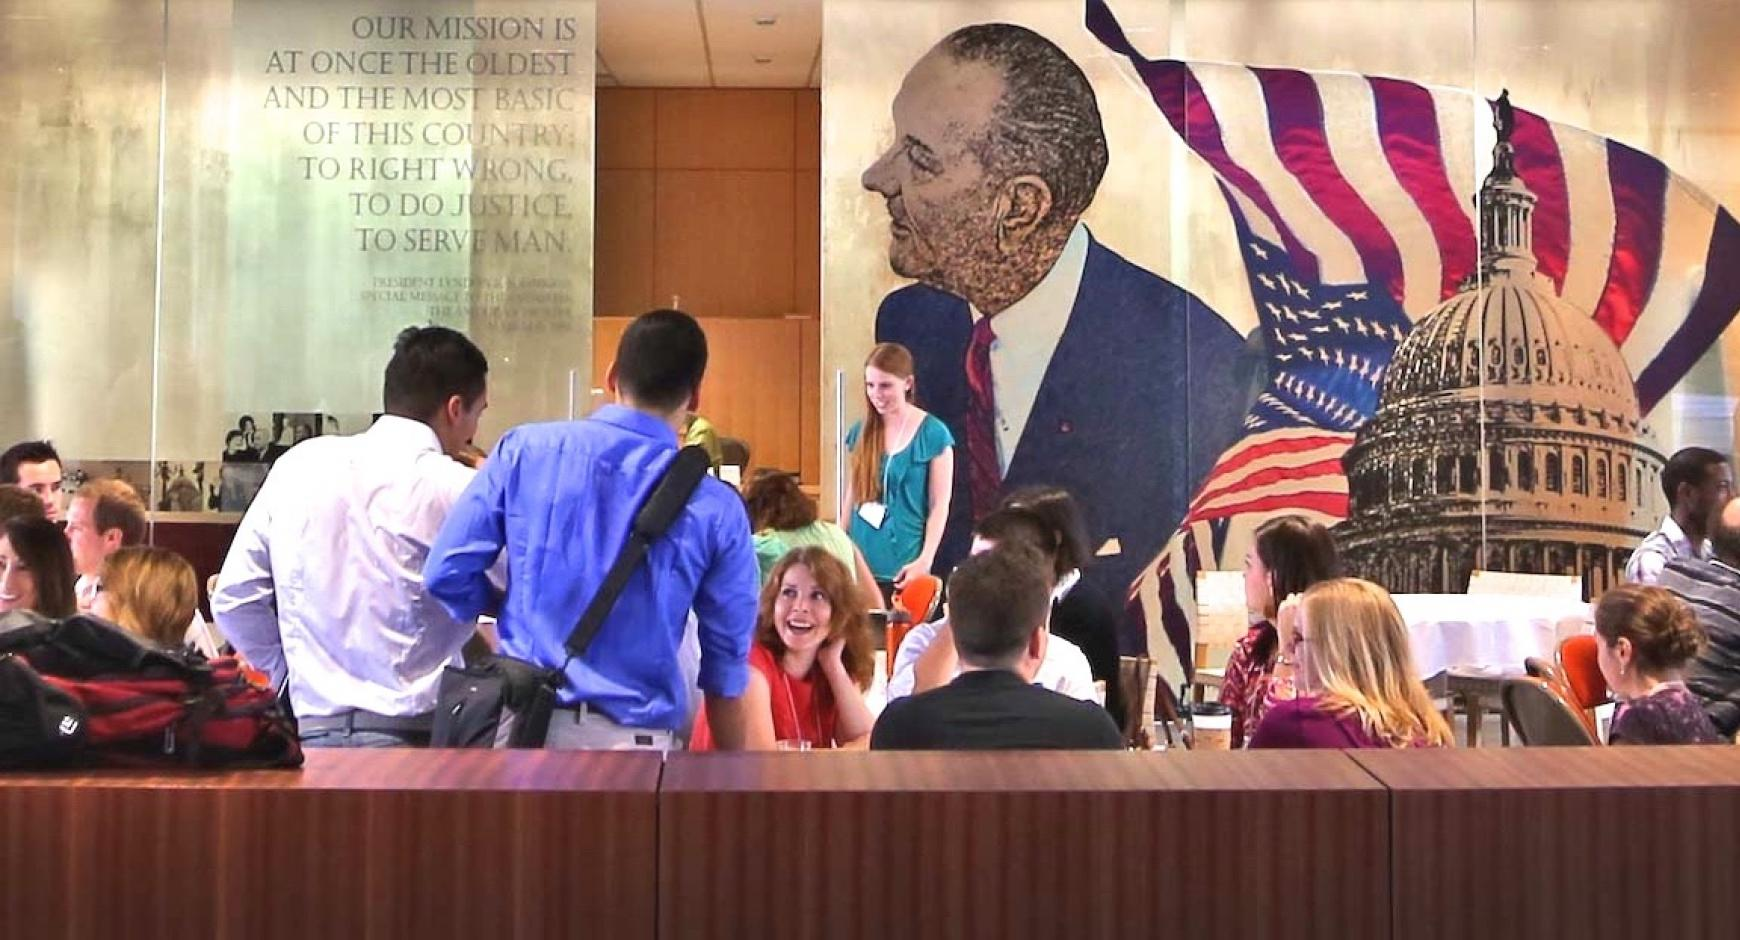 Students mingle inside the LBJ School of Public Affairs.